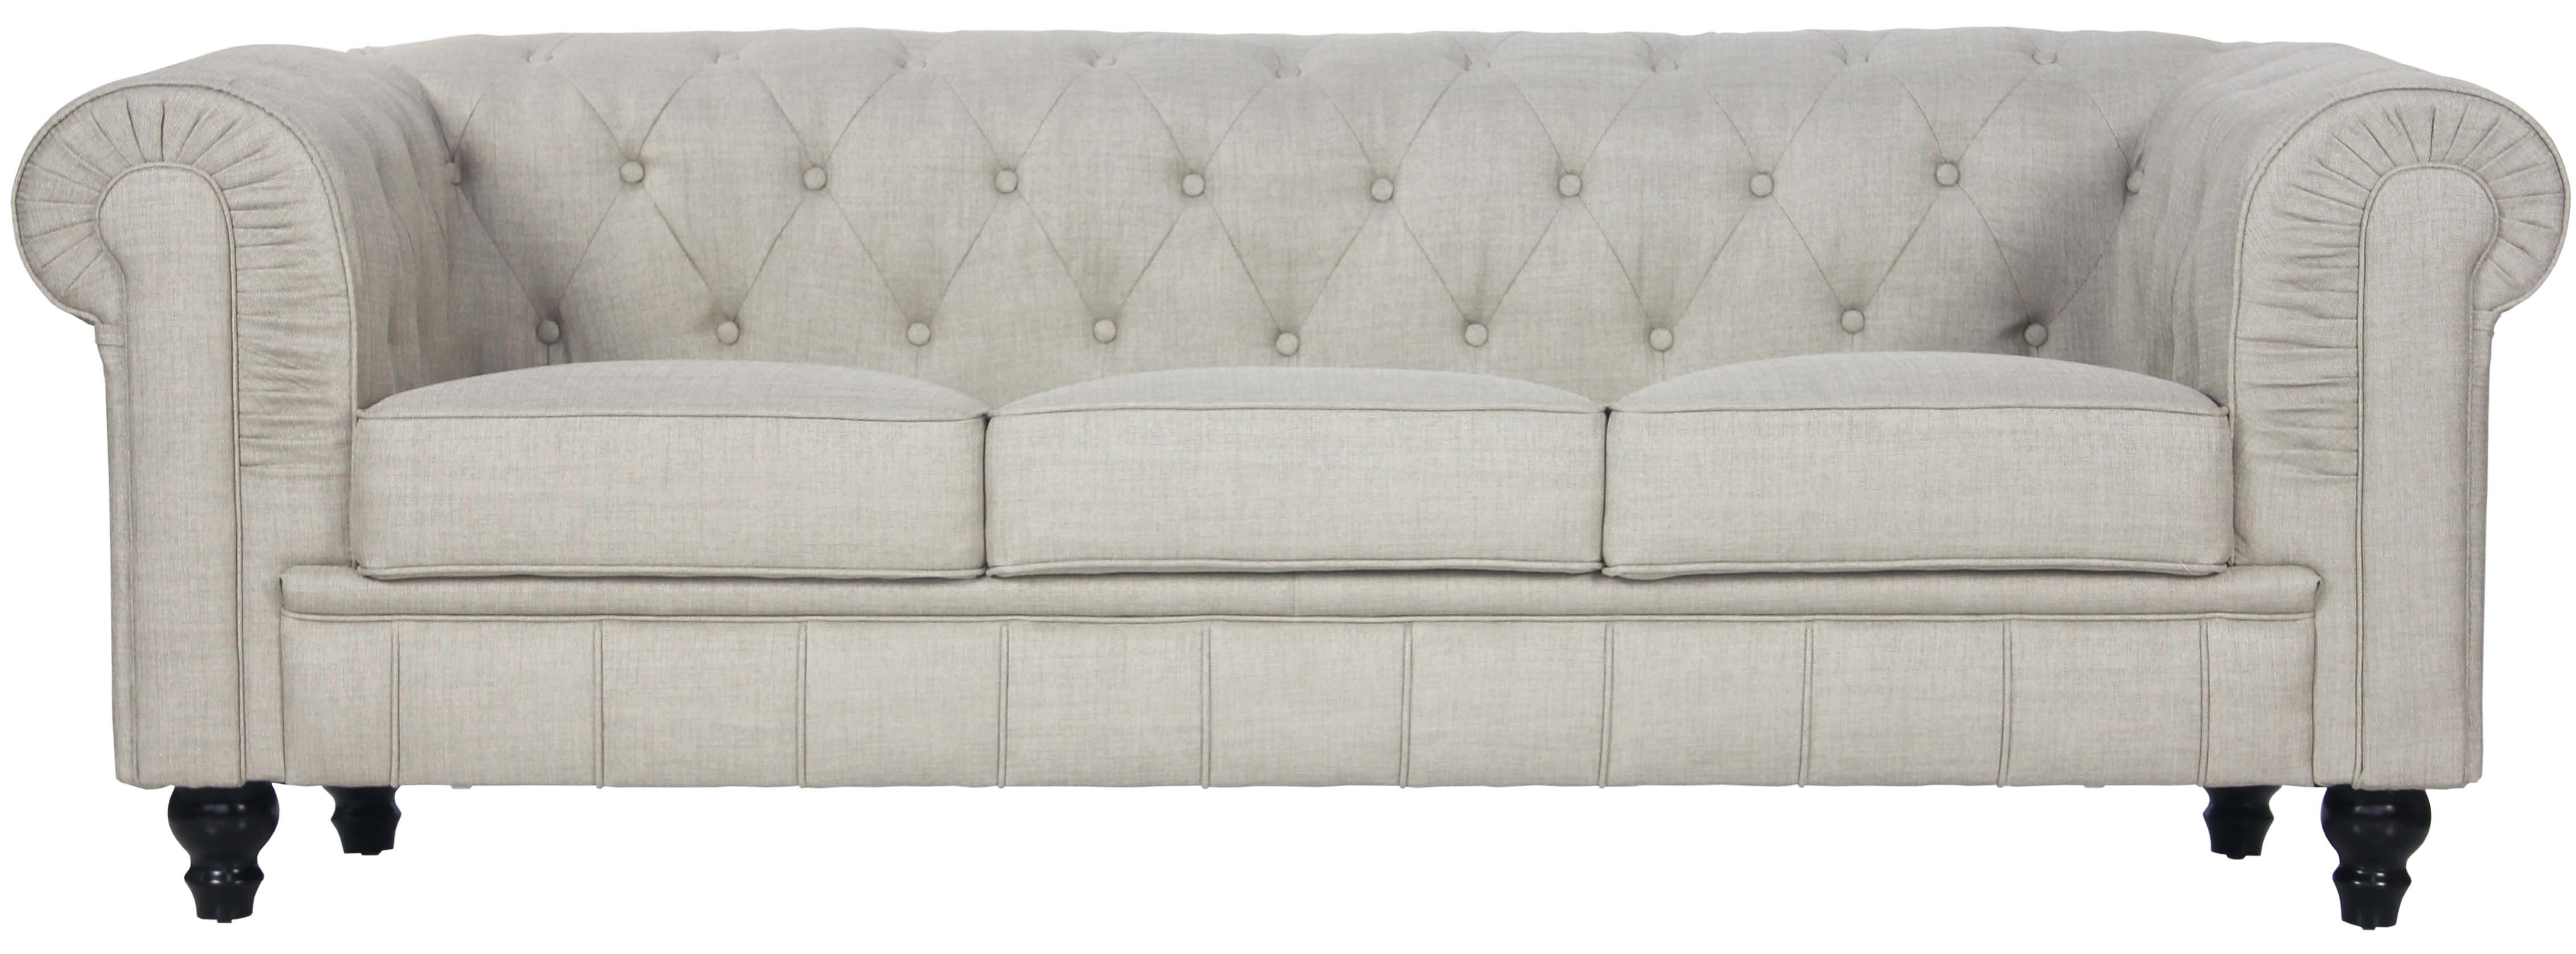 Benjamin Classical 3 Seater Fabric Sofa in Beige